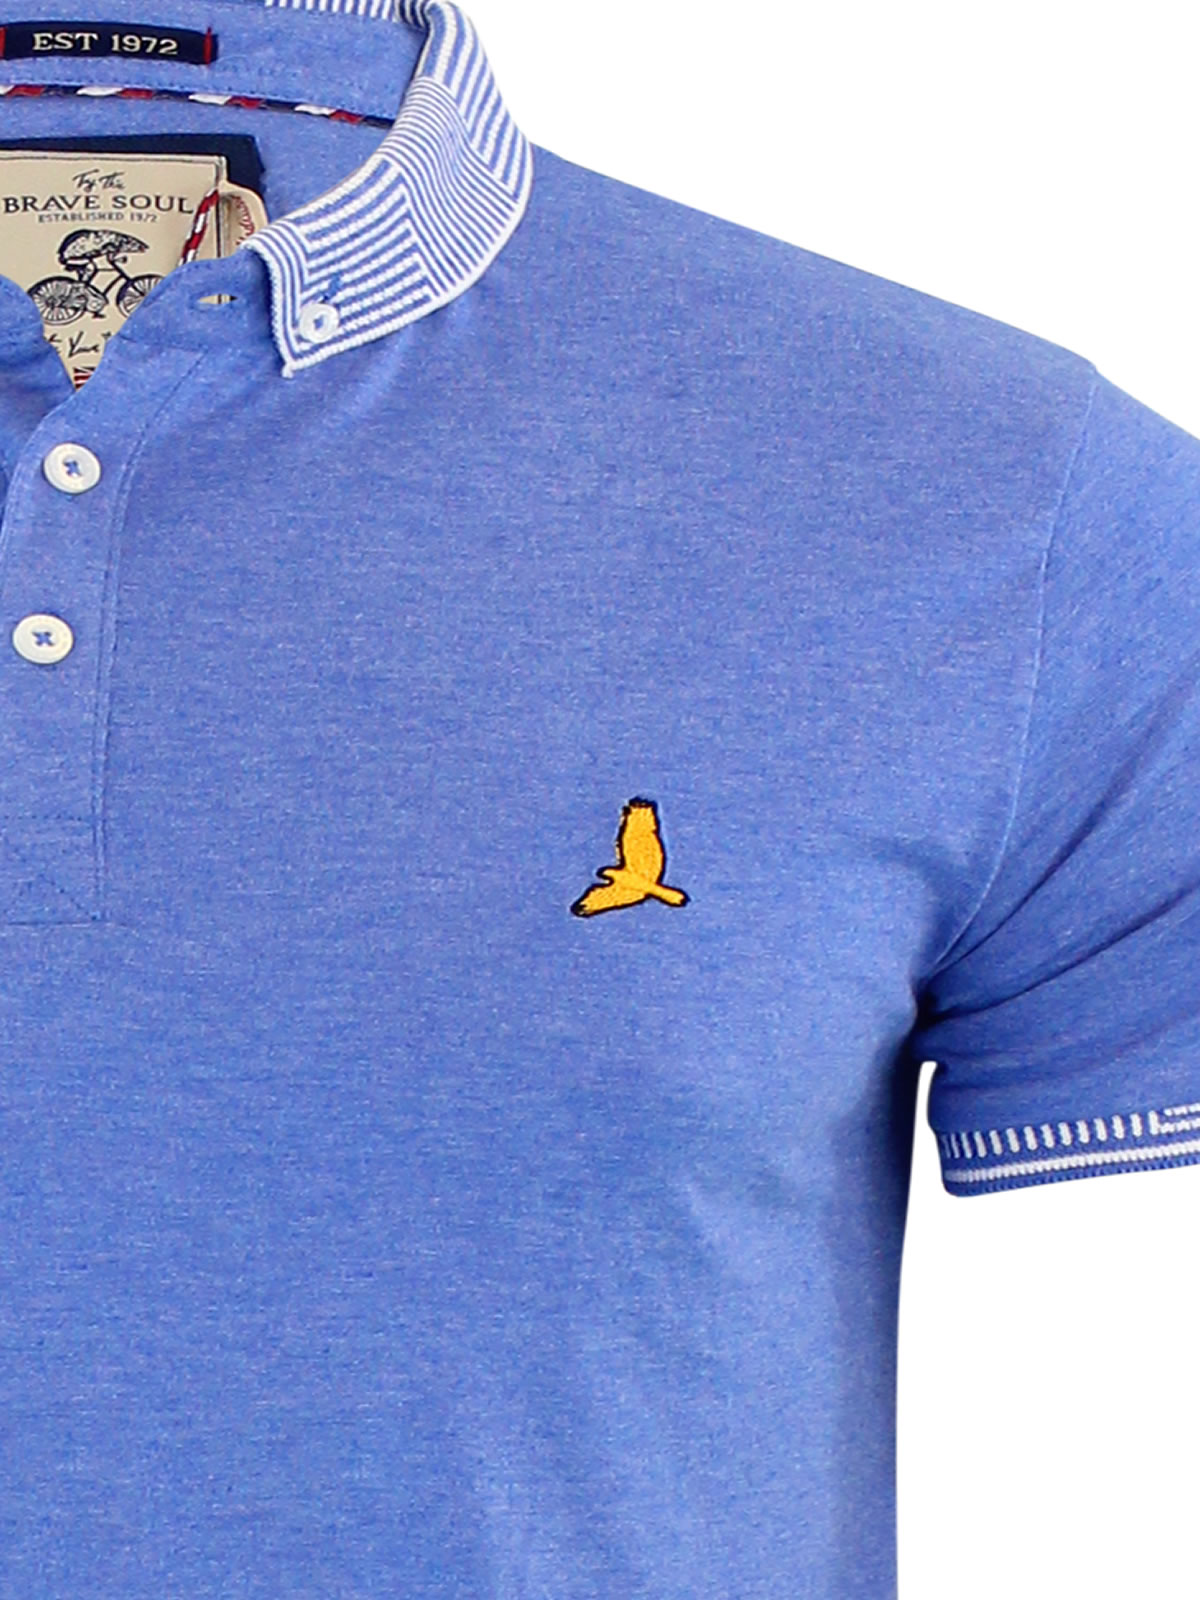 Mens-Polo-T-Shirt-Brave-Soul-Glover-Cotton-Collared-Short-Sleeve-Casual-Top thumbnail 7